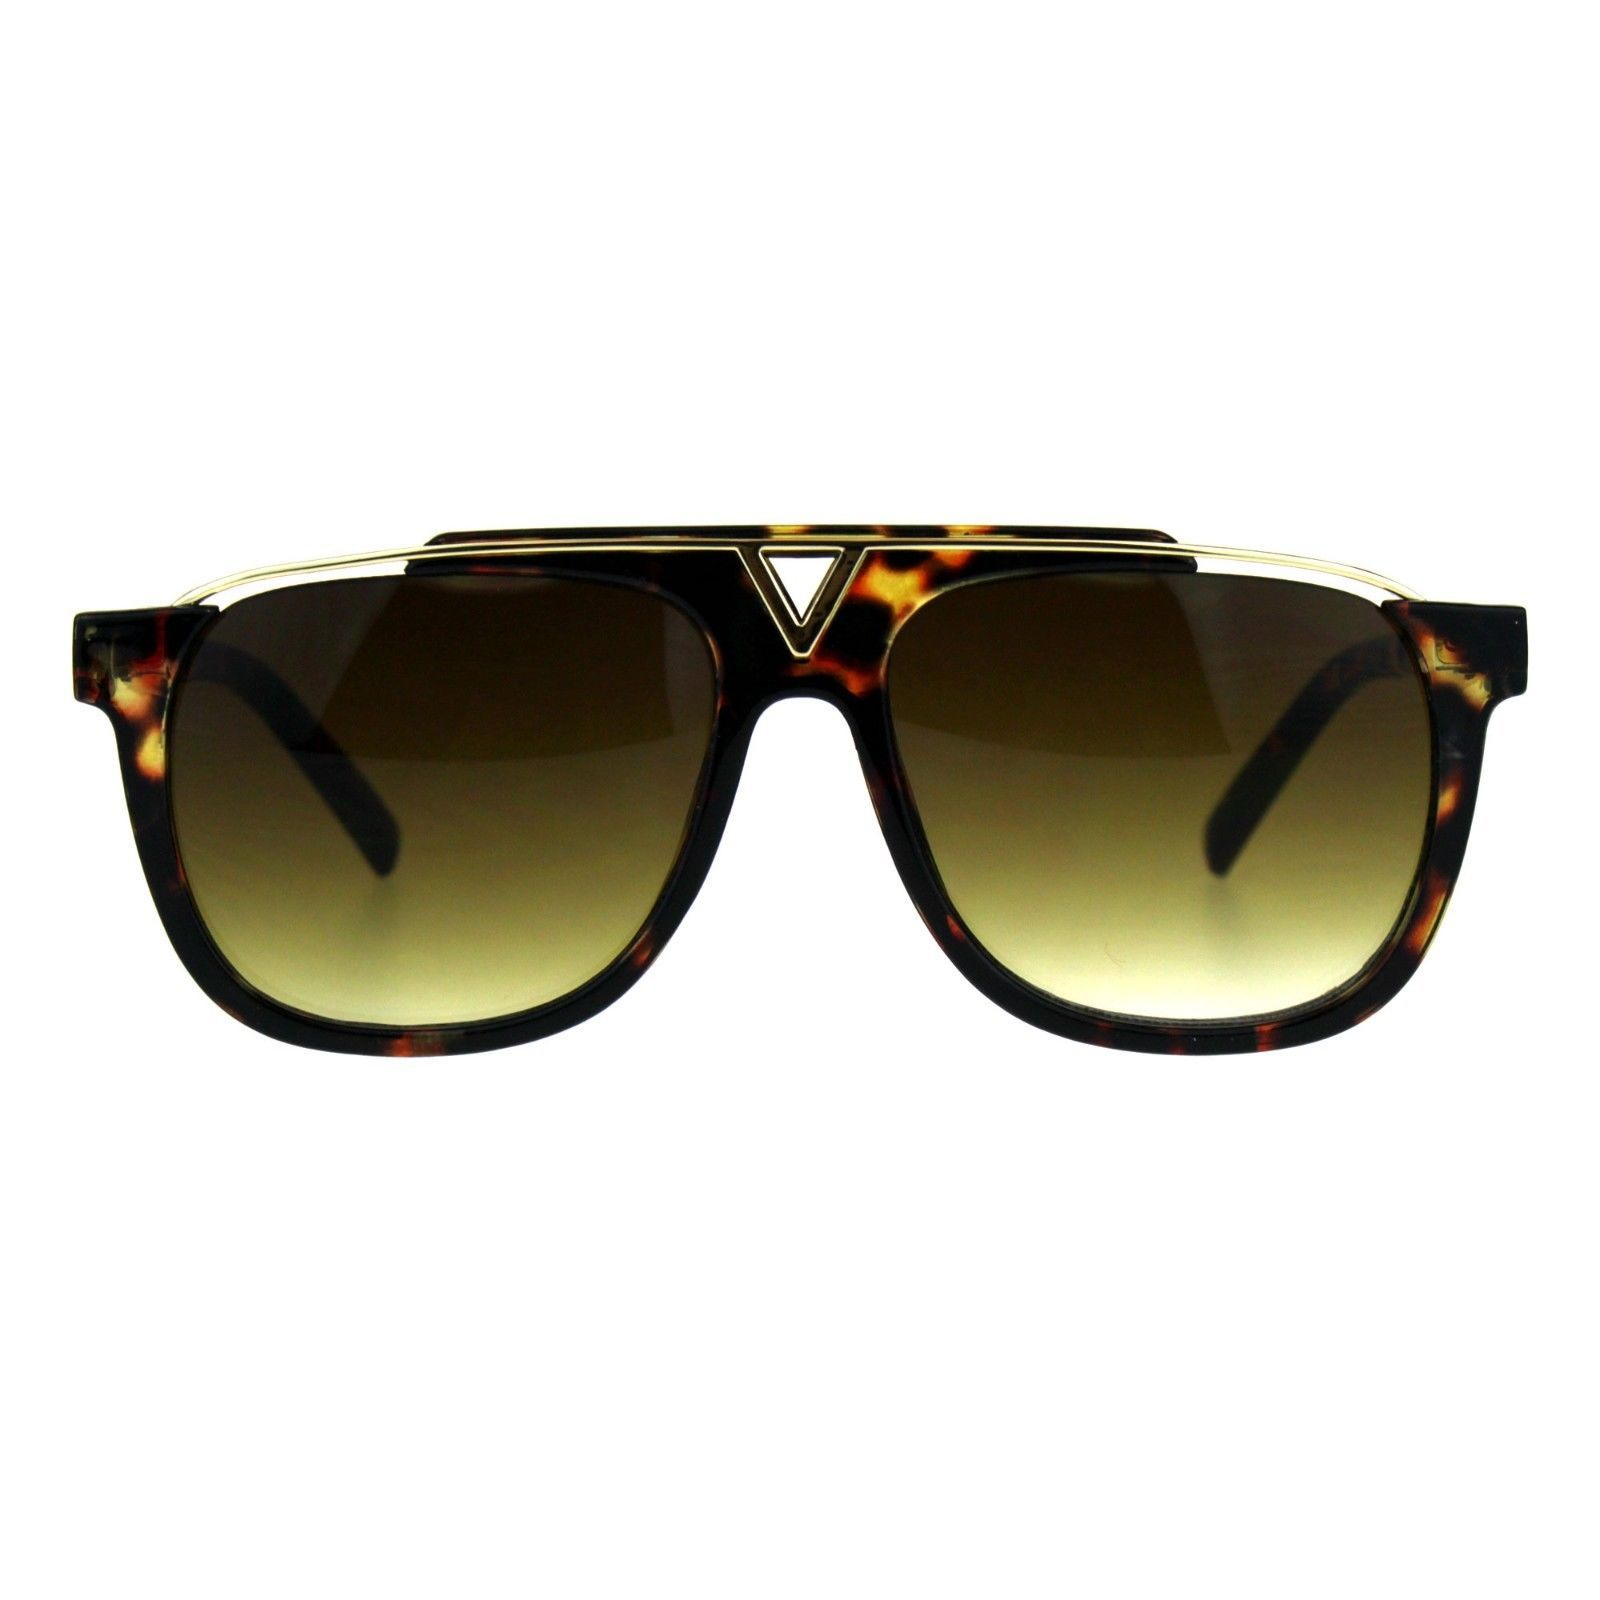 Retro Modern Sunglasses Unisex Fashion Del Metal Top Square Frame UV 400